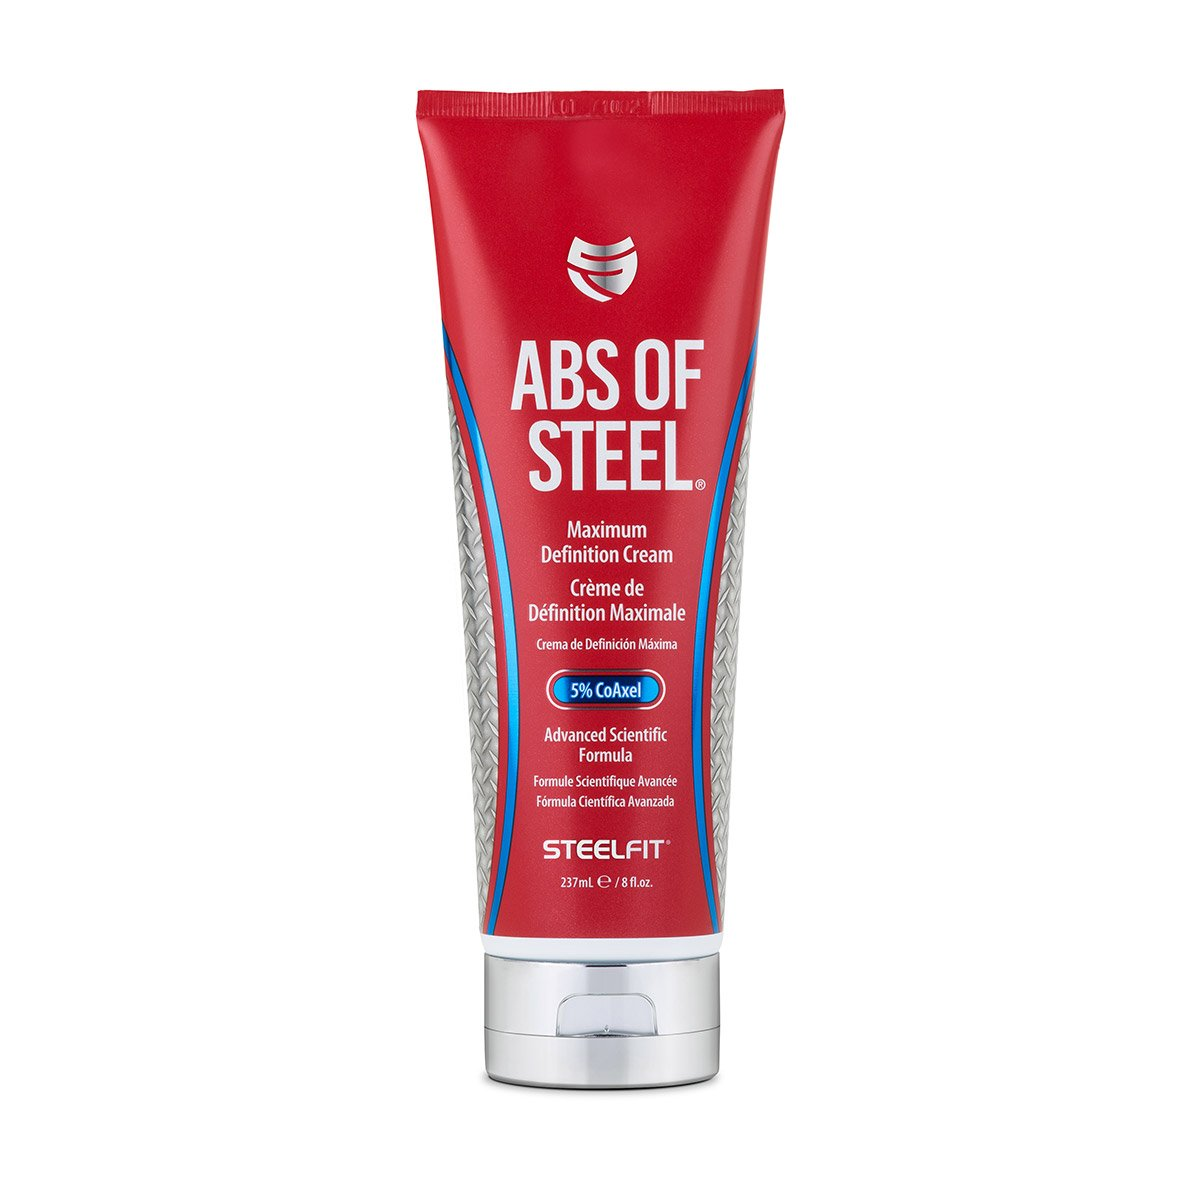 SteelFit Abs of Steel Maximum Definition Cream with 5% Coaxel, 8 fl oz (237ml). by SteelFit (Image #1)